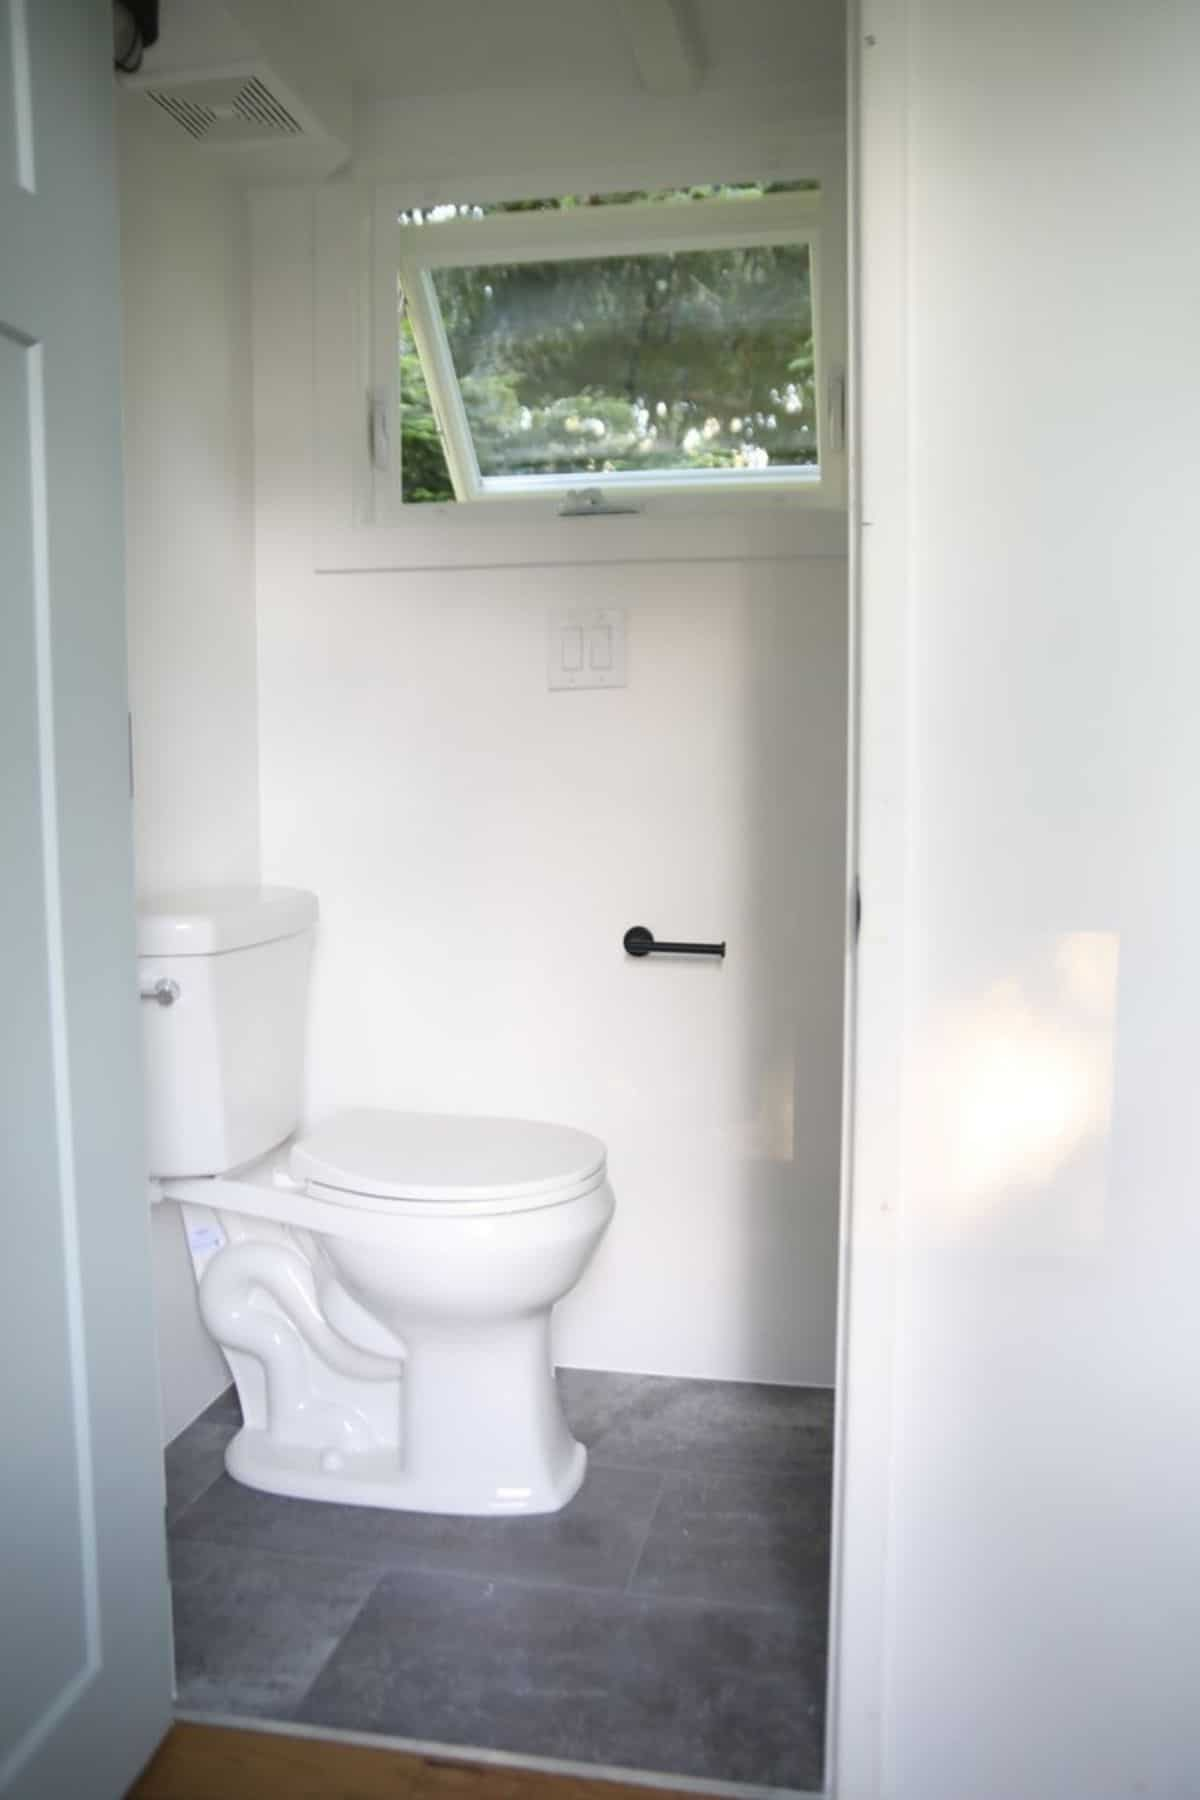 white flush toilet against white wall with window open above